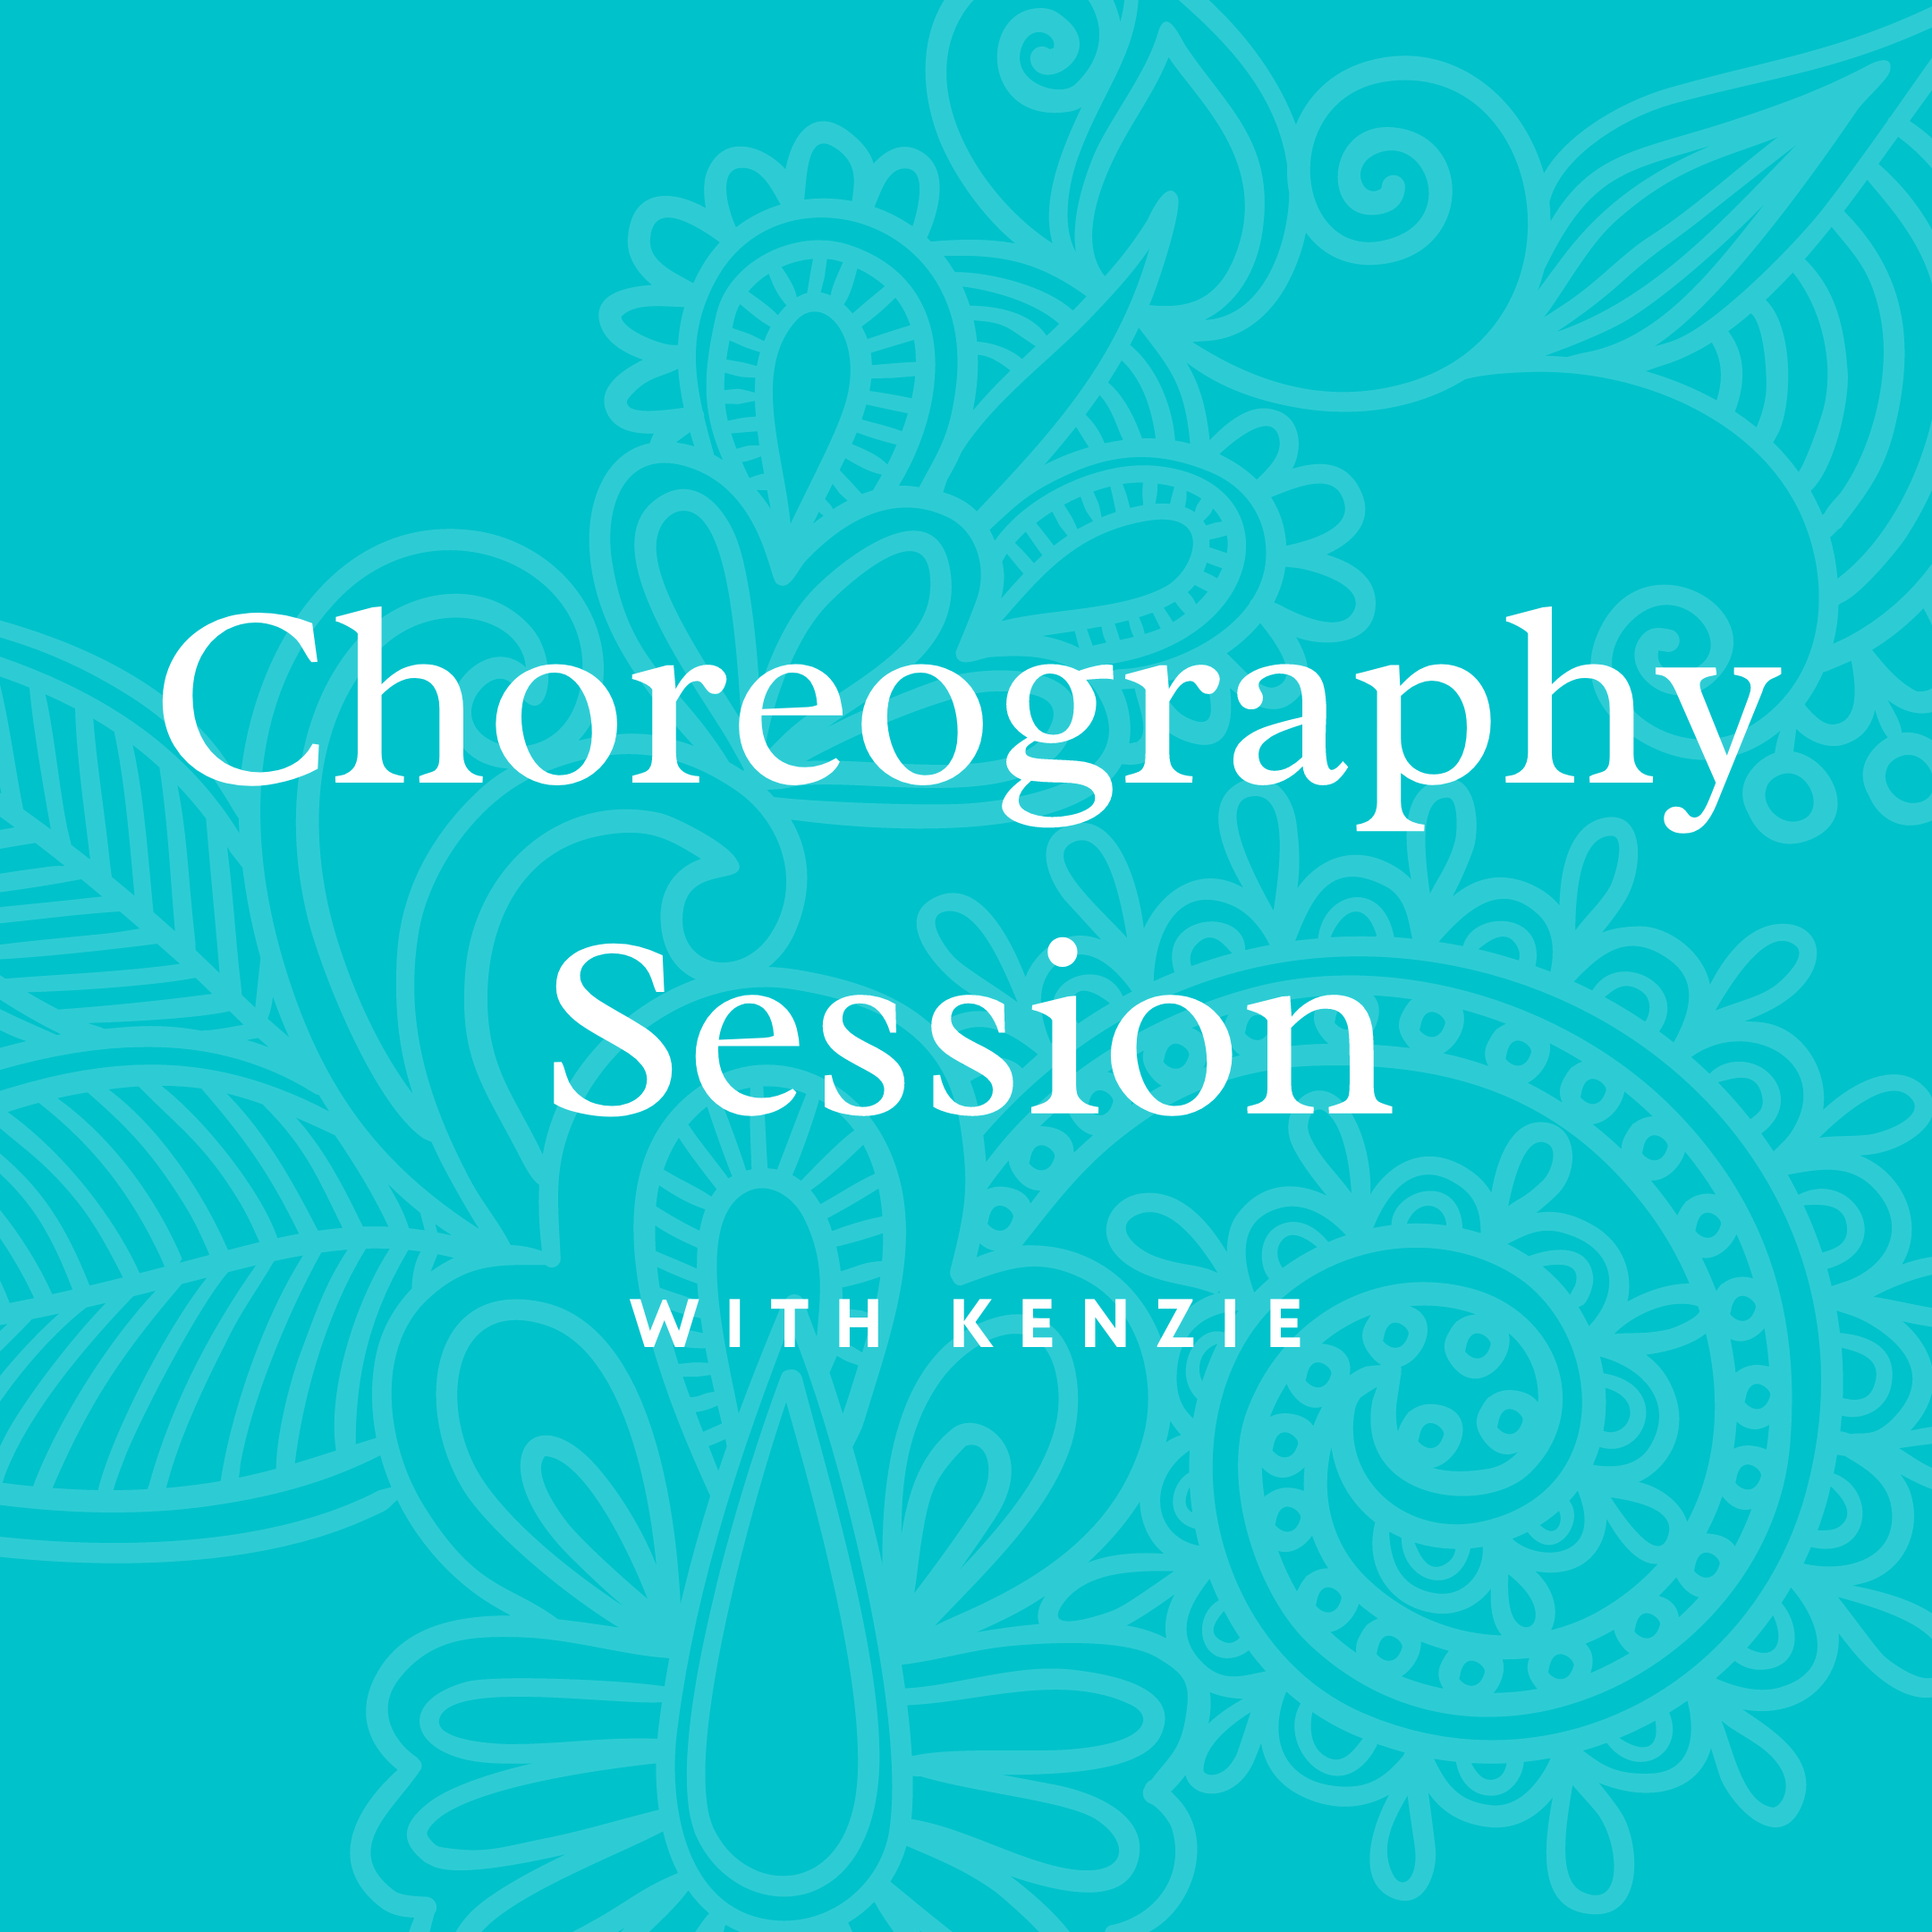 Choreography Session with Kenzie